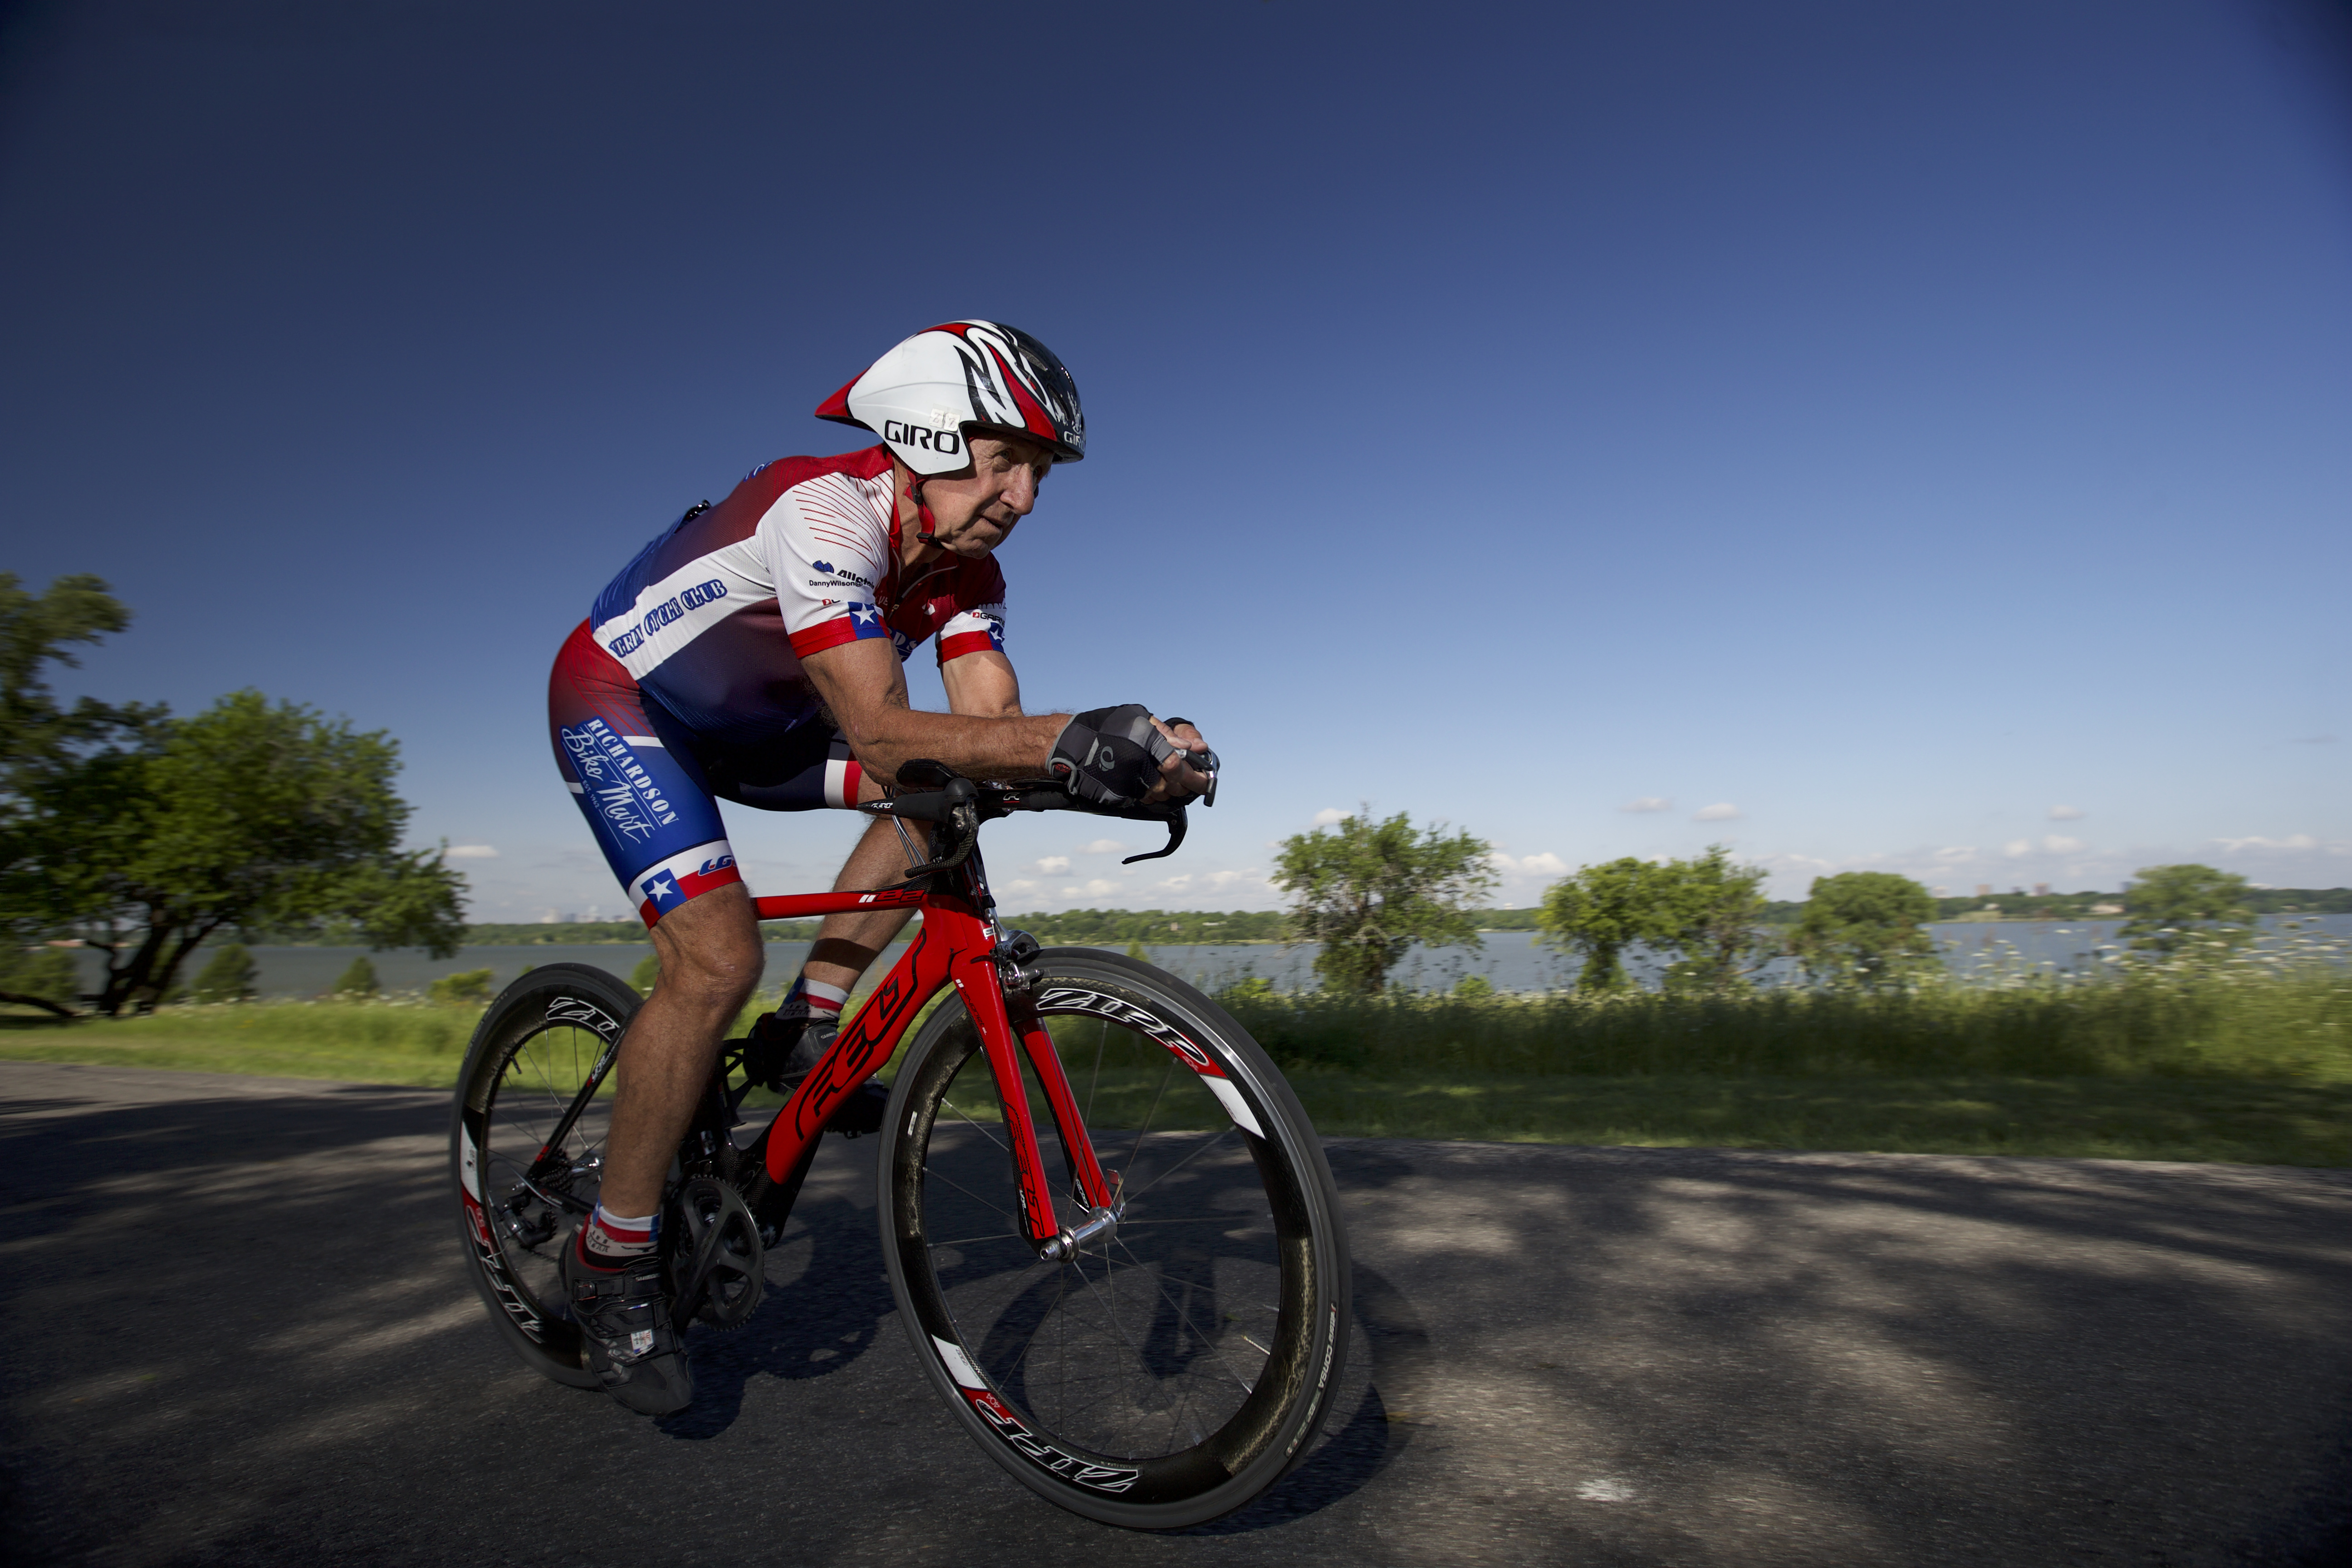 Zoltan Zsohar, 70, of Dallas, will compete in various cycling competitions at the 2017 National Senior Games presented by Humana and is one of 15 senior athletes being recognized as a 2017 Humana Game Changer. Humana Game Changers are National Senior Games athletes who exemplify healthy aging and provide encouragement, motivation and inspiration for all seniors to start with healthy. The 2017 National Senior Games presented by Humana will take place June 2-15, 2017 in Birmingham, Alabama. (Brandon Wade/AP Images for Humana)